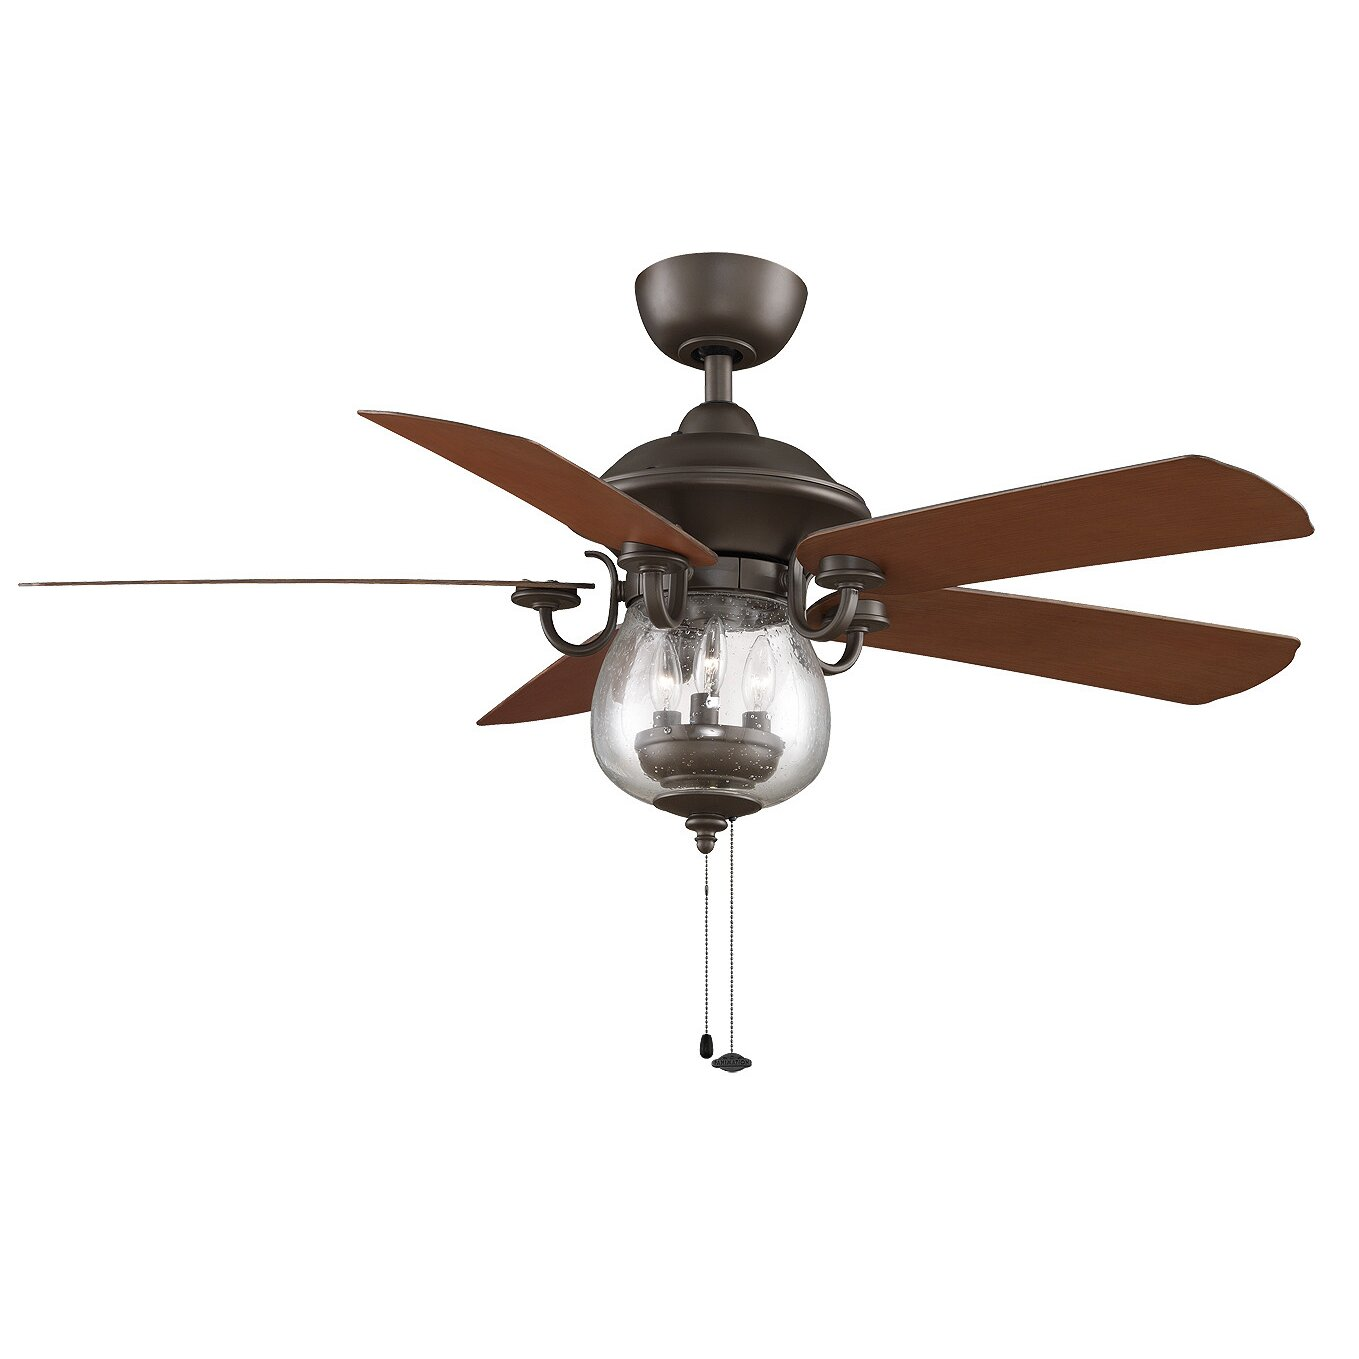 Outdoor ceiling fan with light and remote - Crestford 5 Blade Ceiling Fan